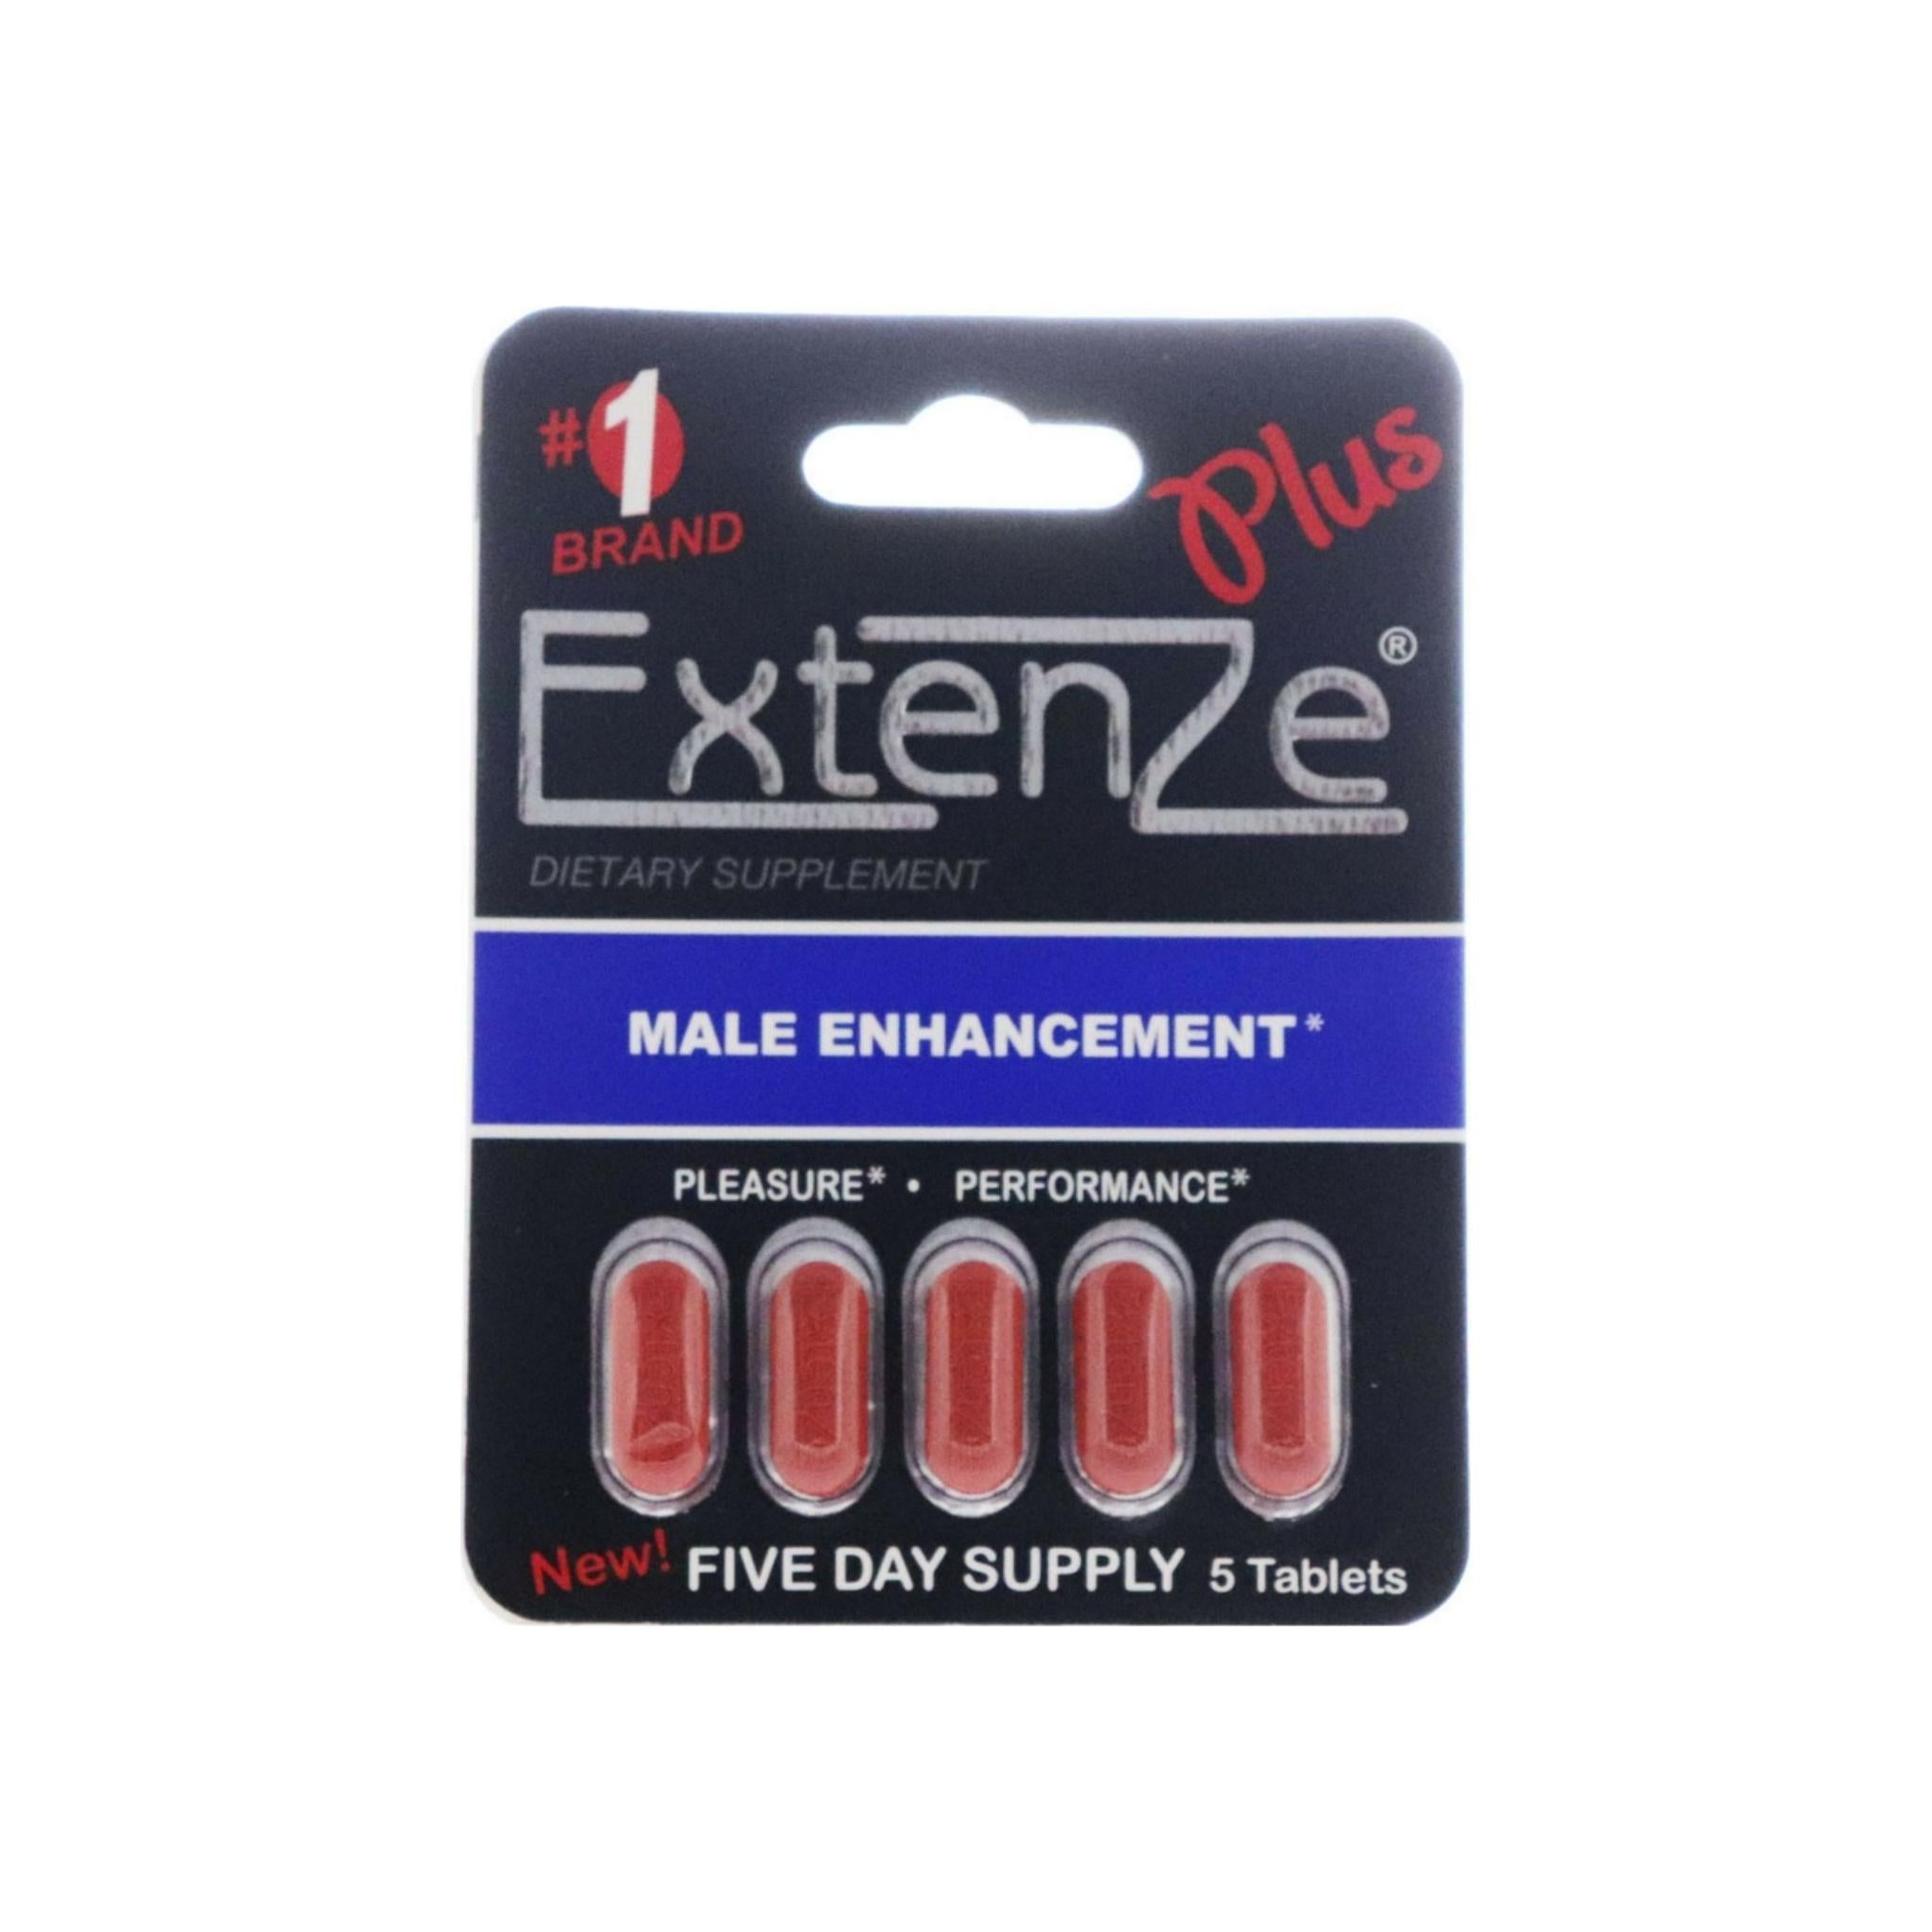 made in which country  Male Enhancement Pills